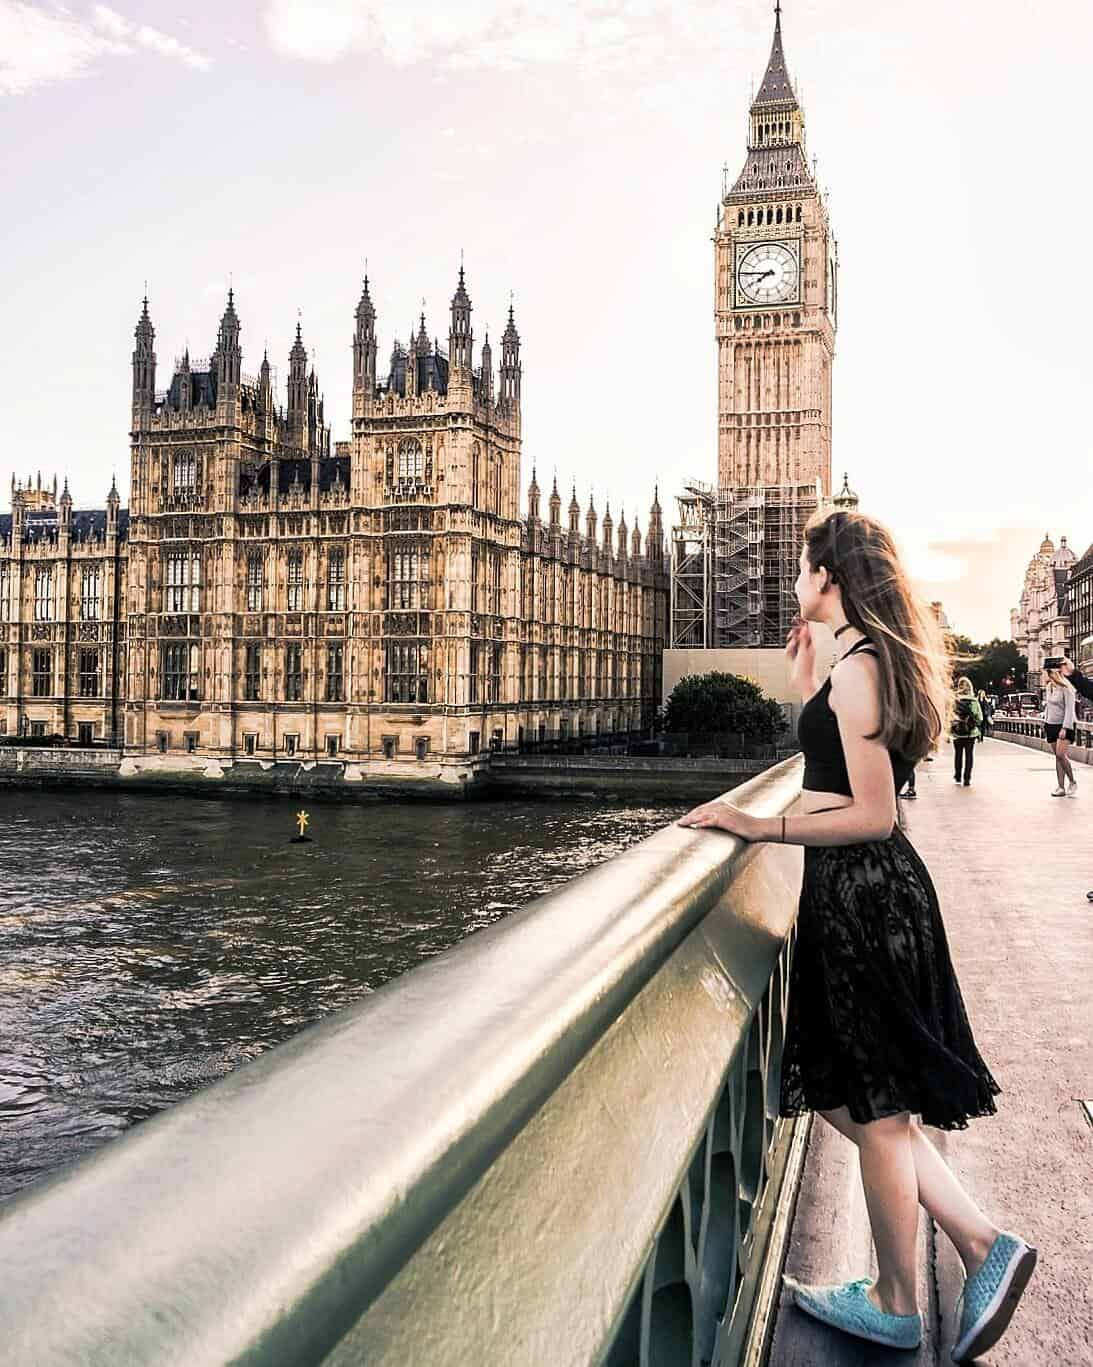 London Bucket List: 50 must see London attractions in the Big Smoke, London, England